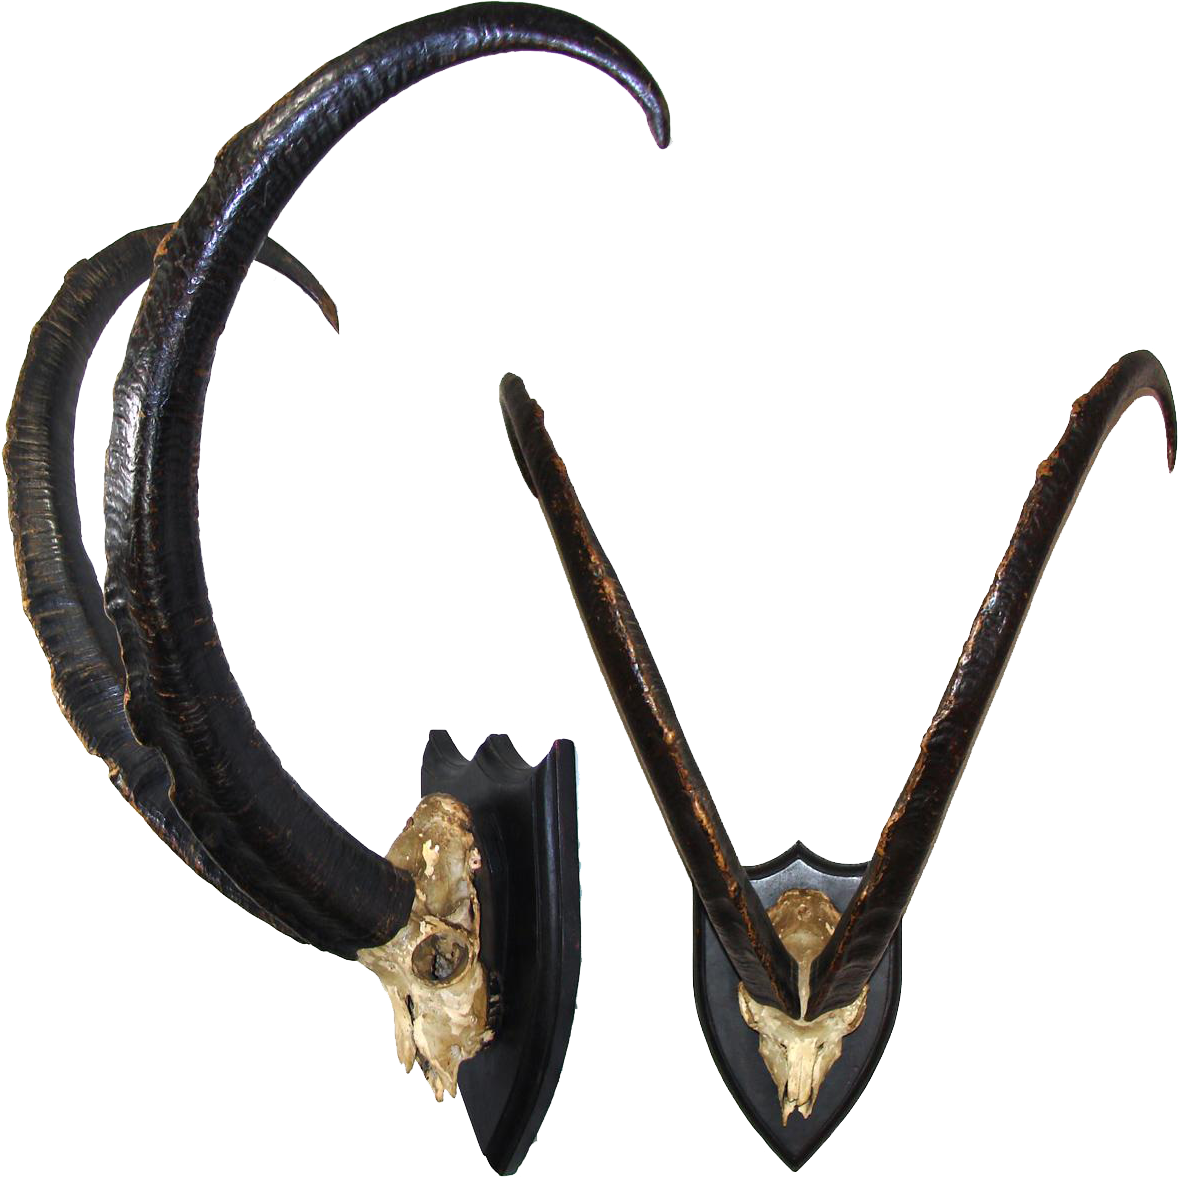 Rare Massive Antique Victorian Era Trophy Mount Ibex Or Mountain Goat Horns 30 5 Goat Horns How To Antique Wood Mountain Goat